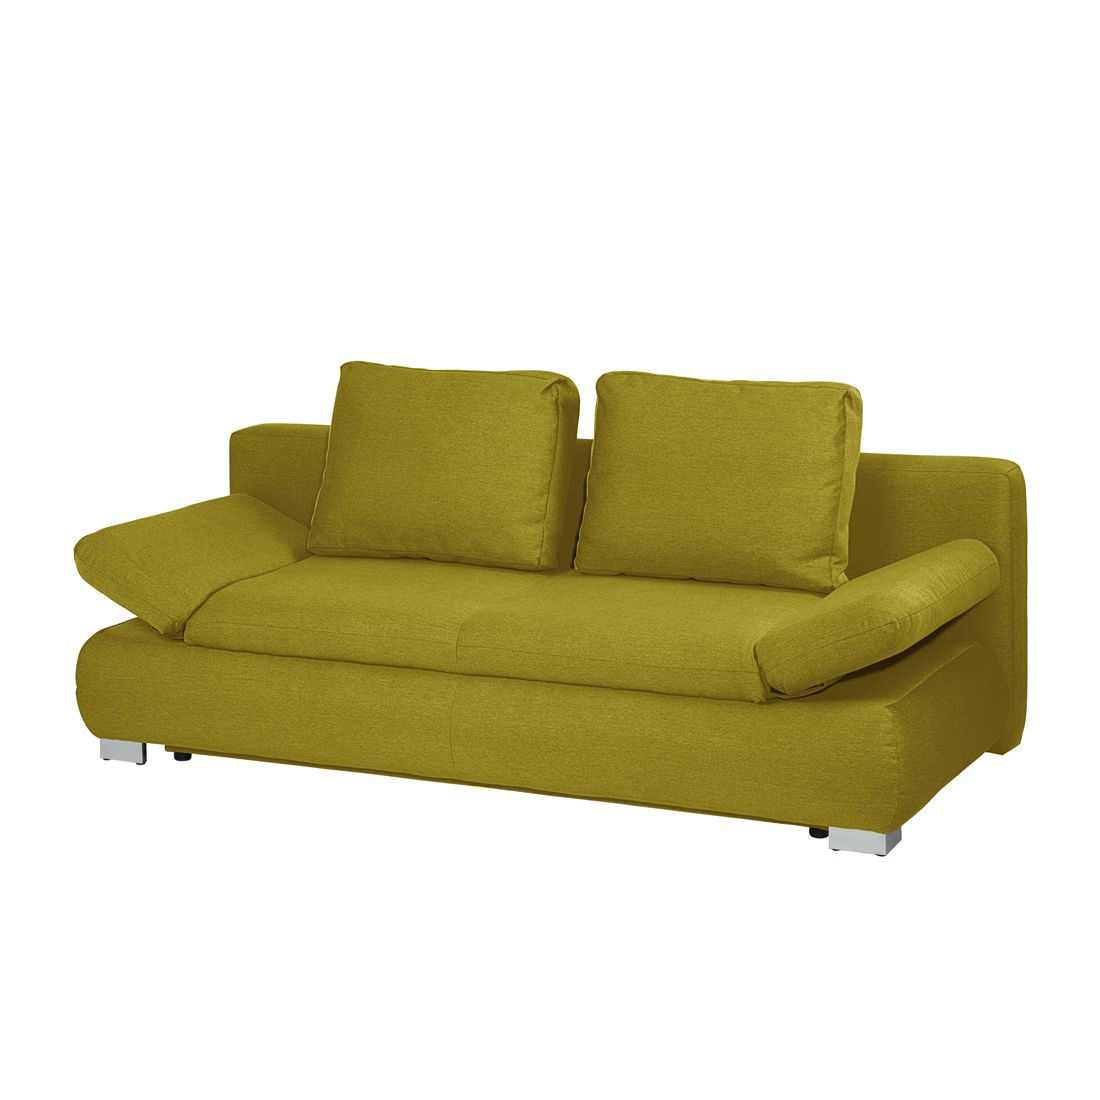 Canap lit relax cuir pas cher fs inspire - Canape convertible vert ...